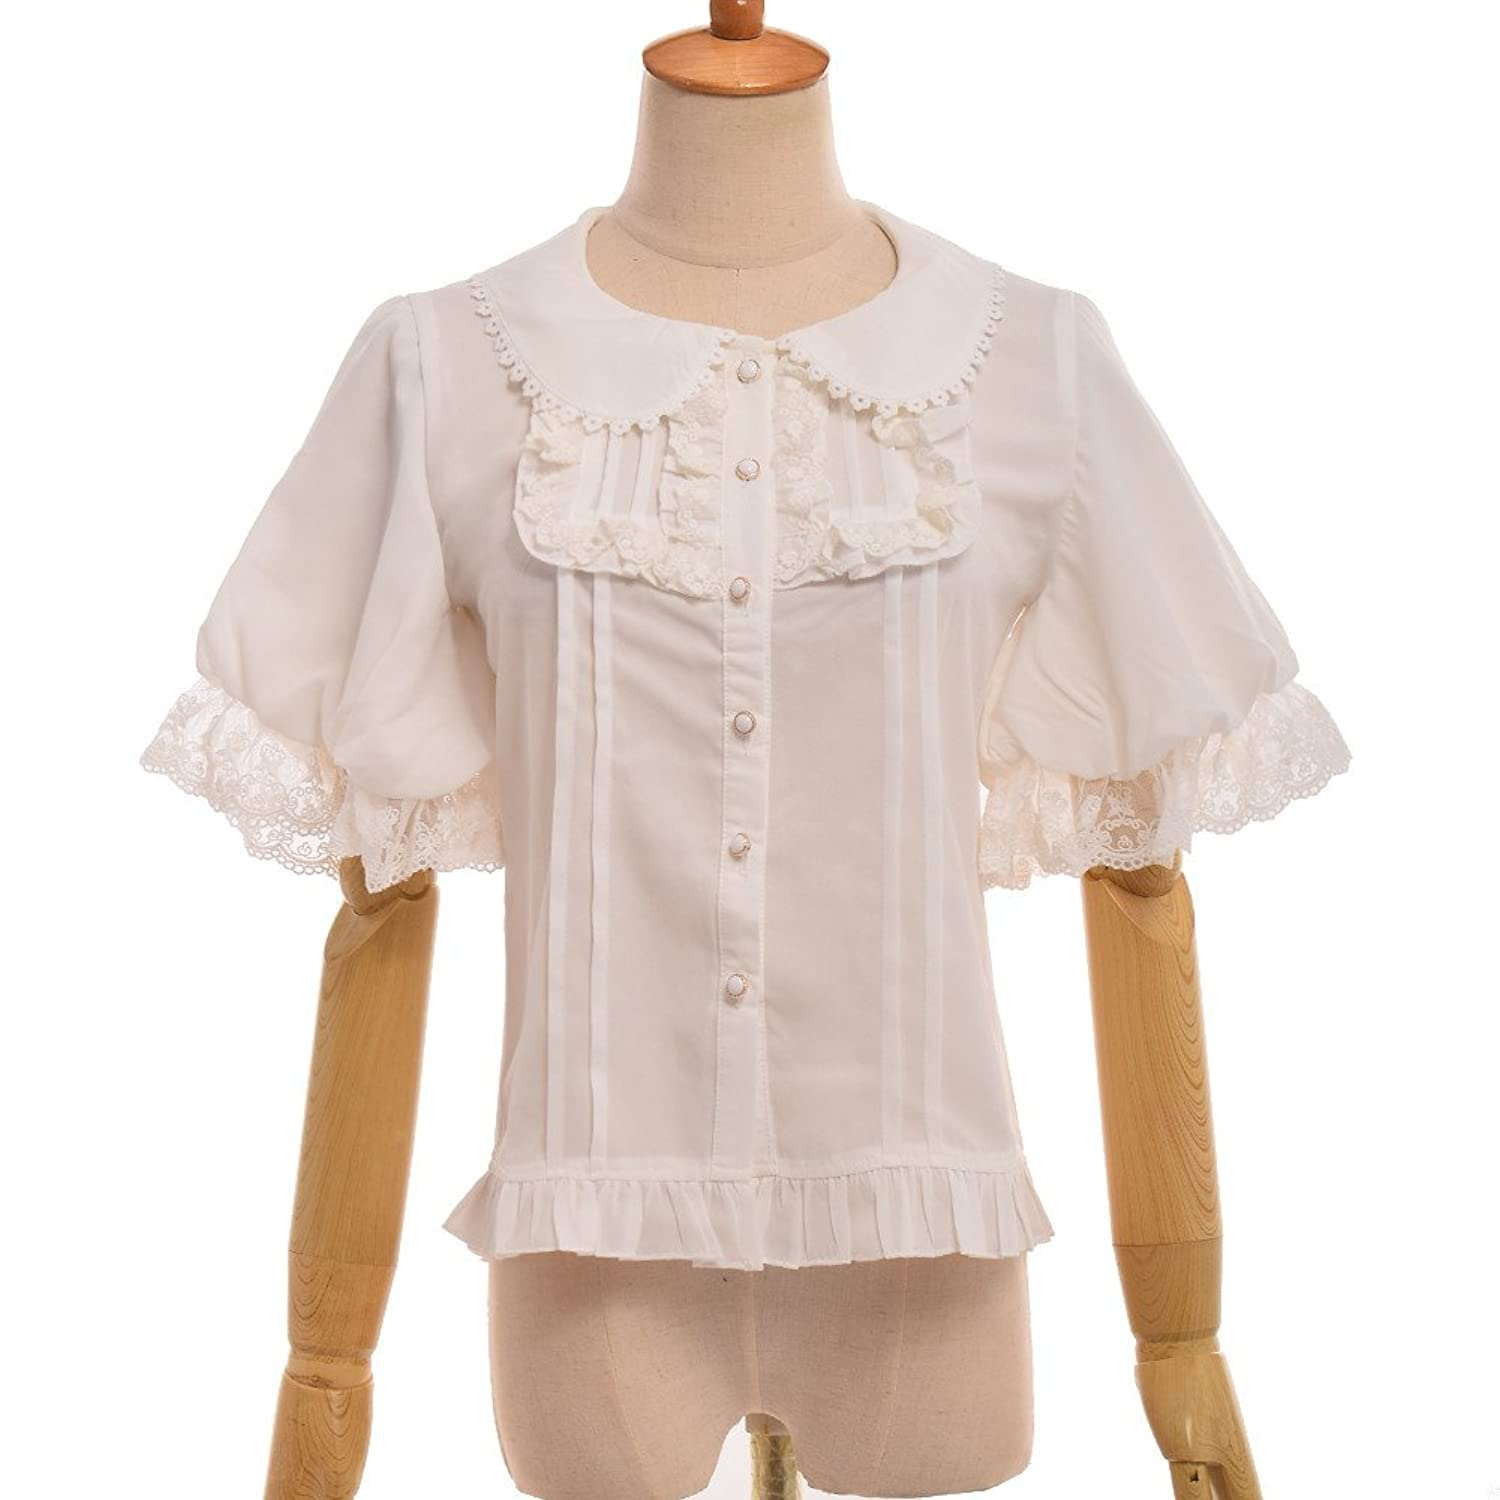 Edwardian Blouses |  Lace Blouses & Sweaters GRACEART Victorian Puff Sleeve Chiffon Shirt Blouse  AT vintagedancer.com